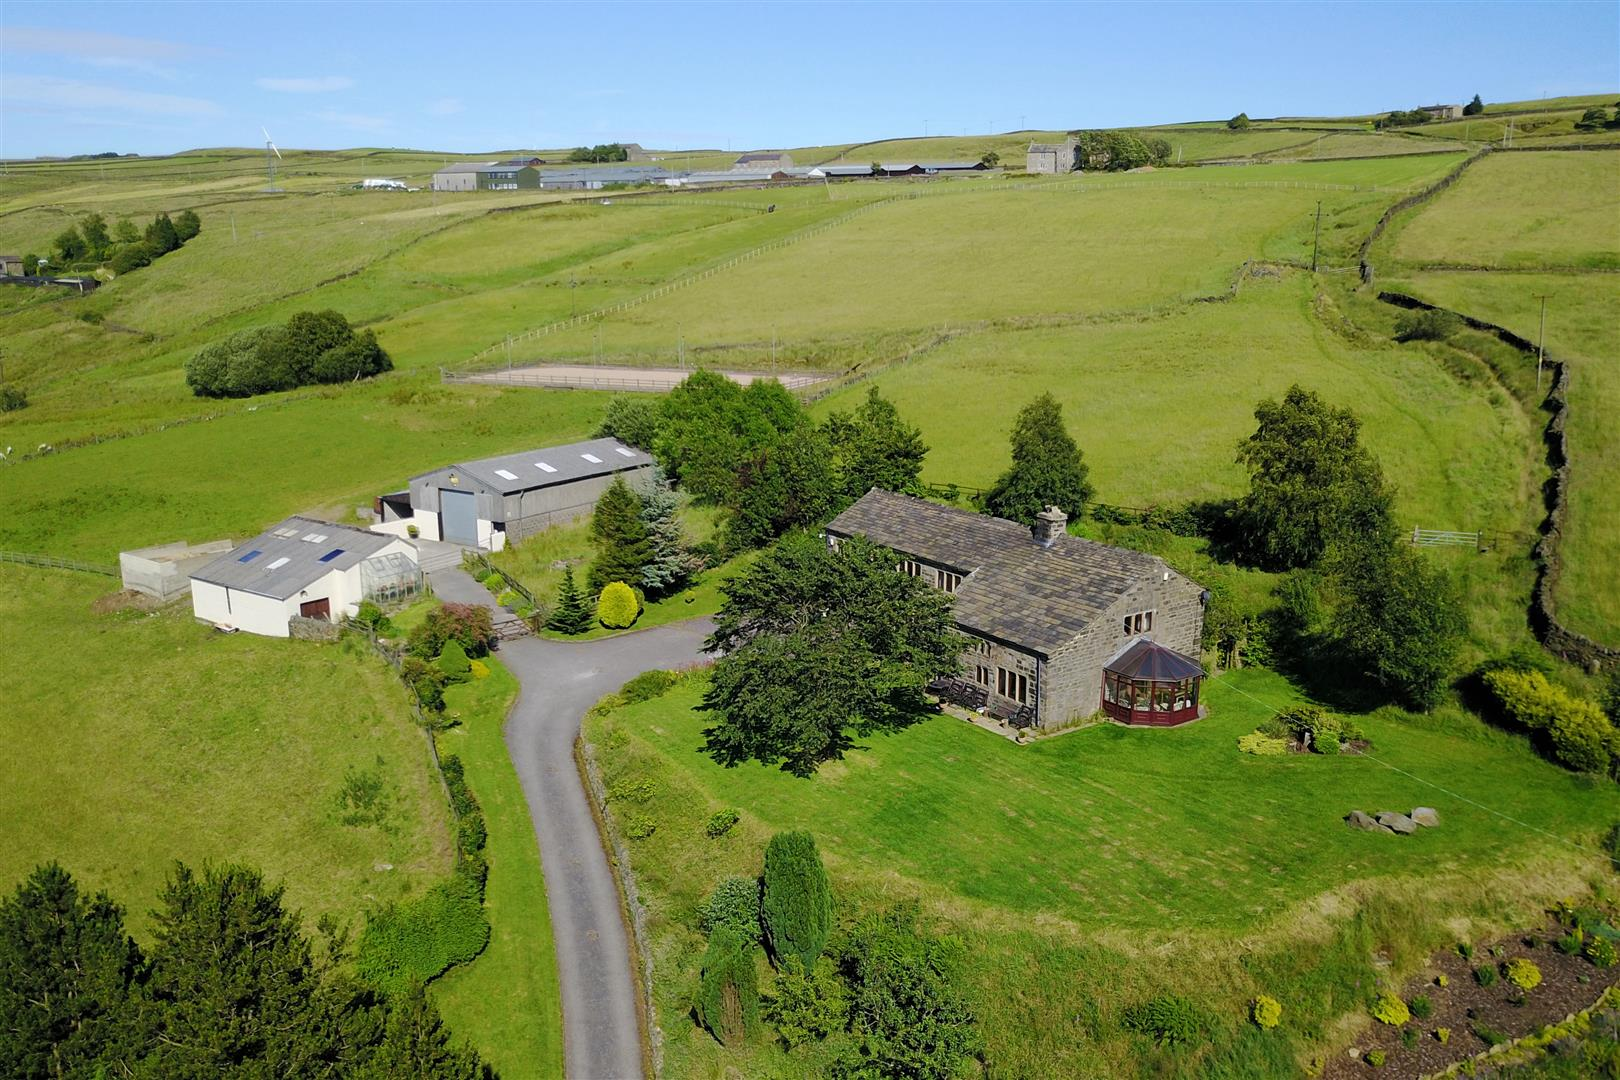 Dean Head Farm, Blackstone Edge Road, Cragg Vale, HX7 5TR